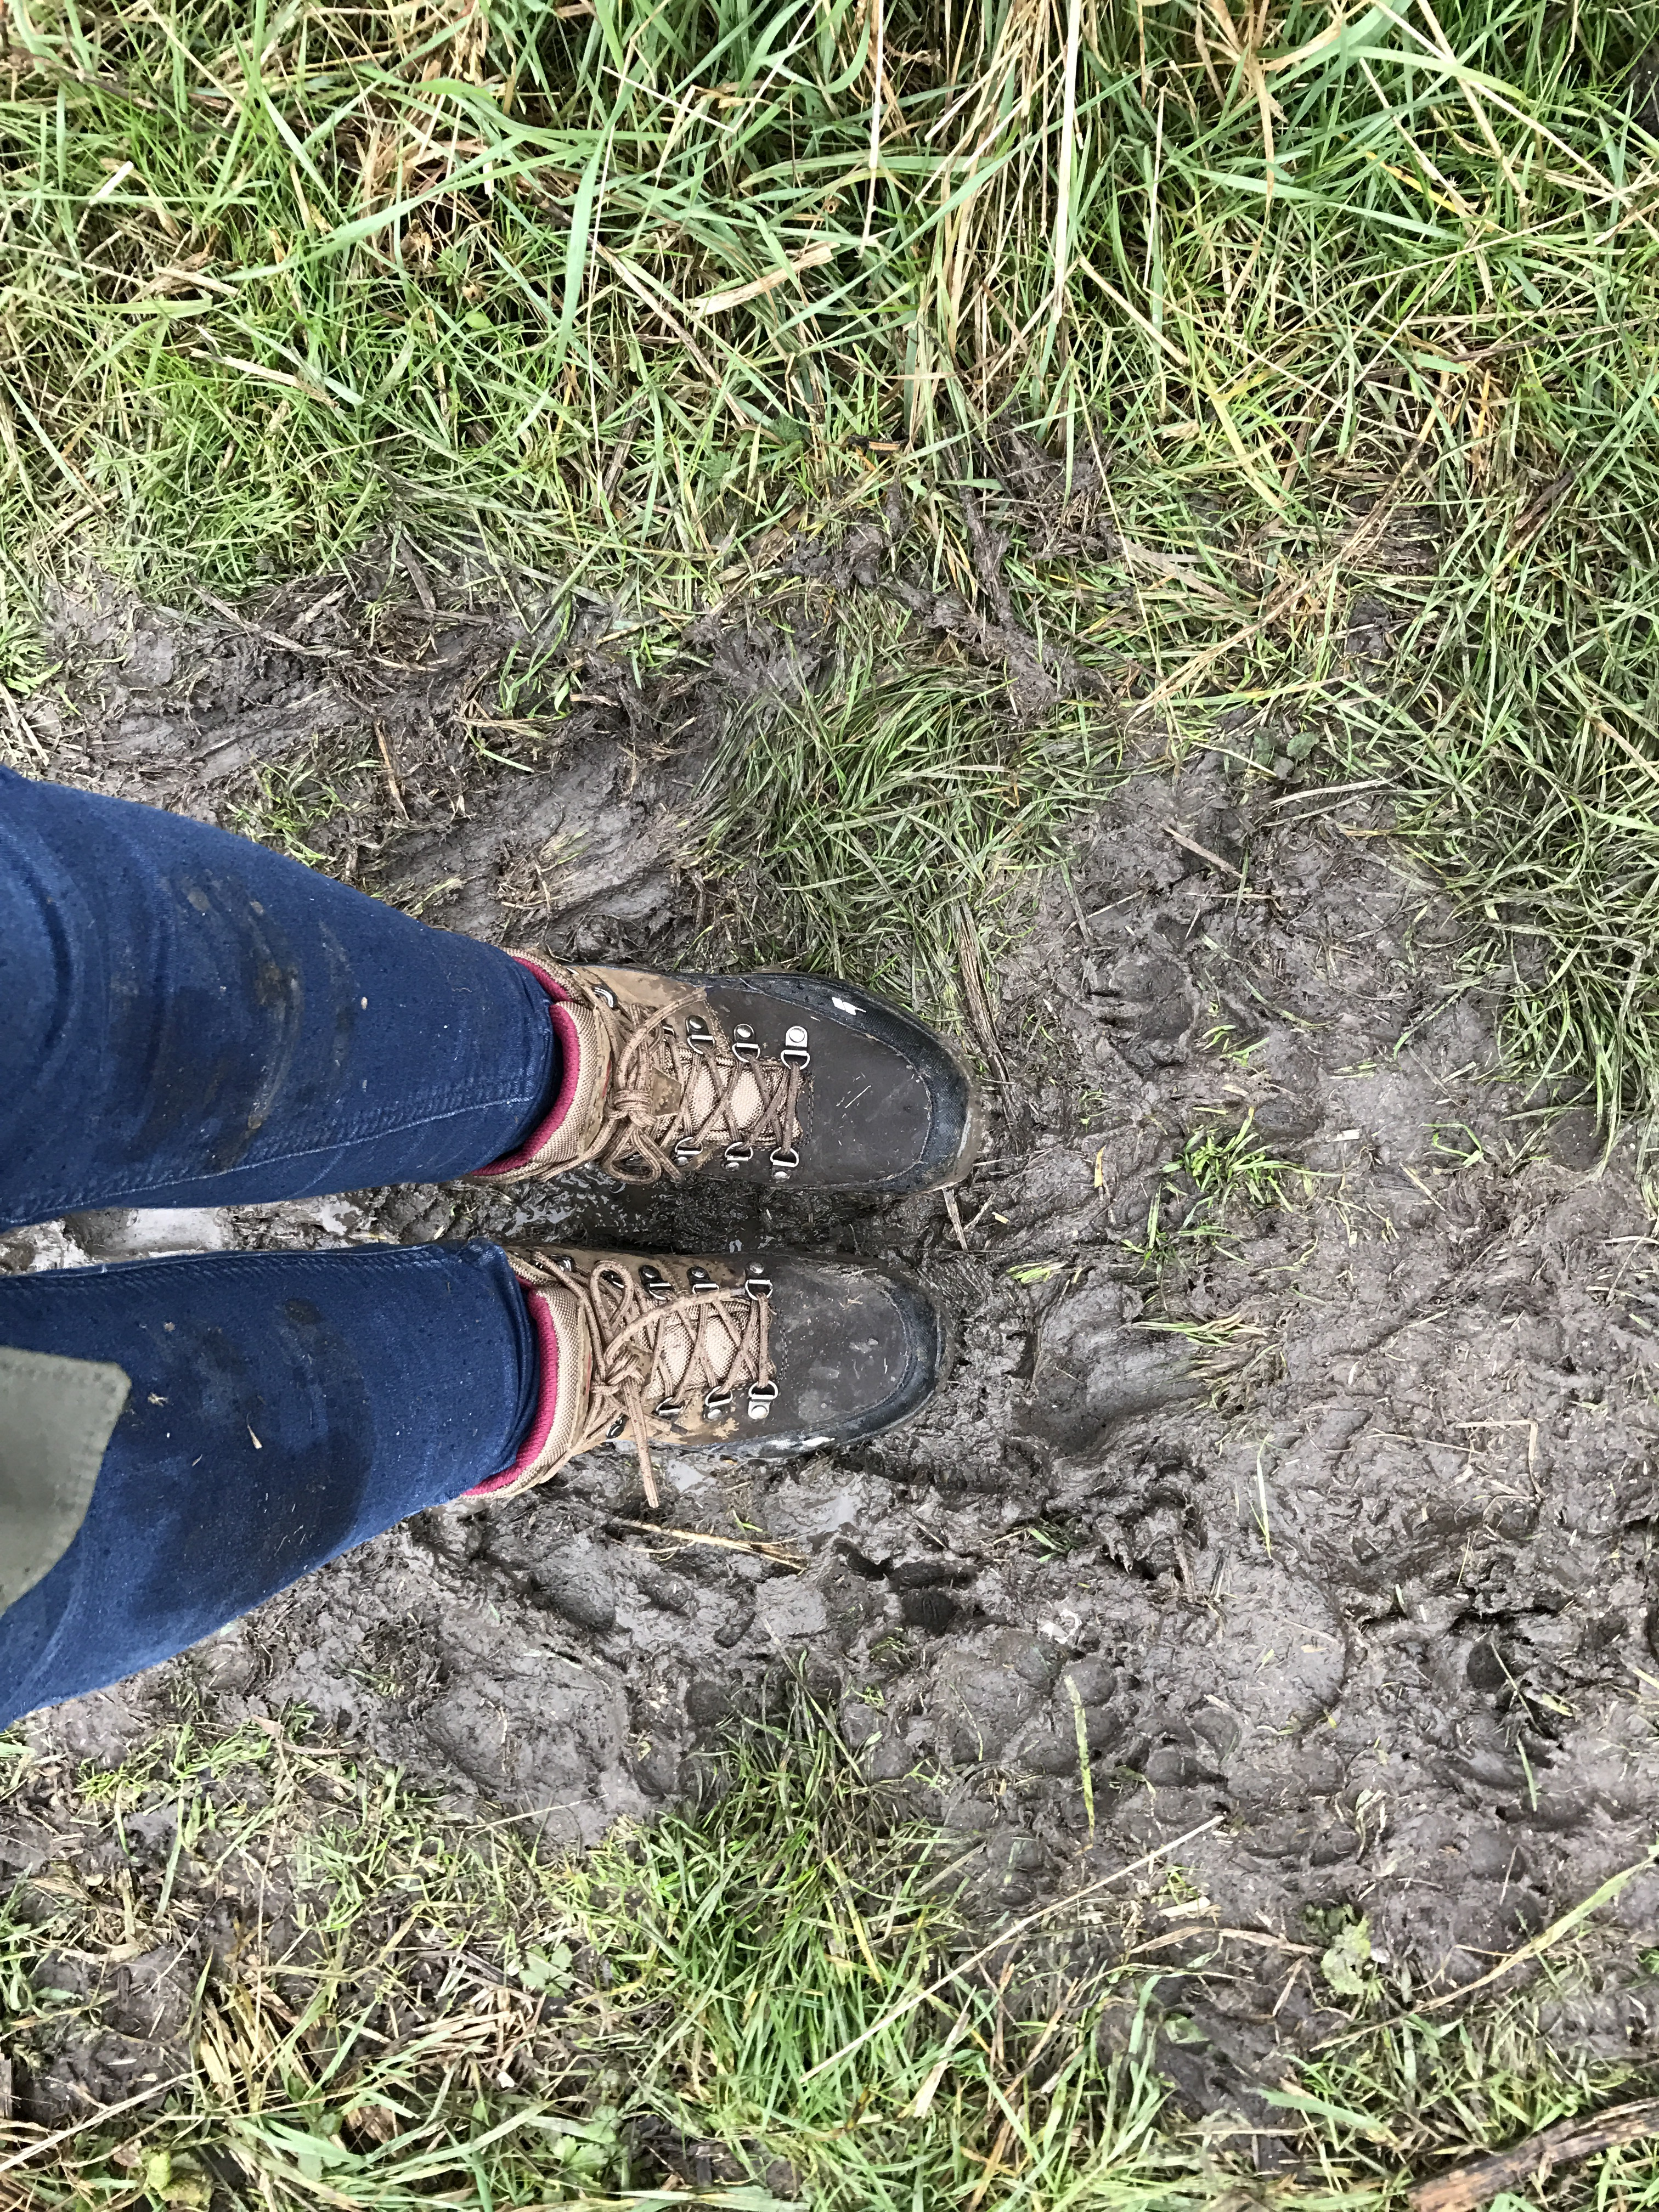 96bfaeaf6f2 Now there s a photo of boots well tested. Please excuse the muddy